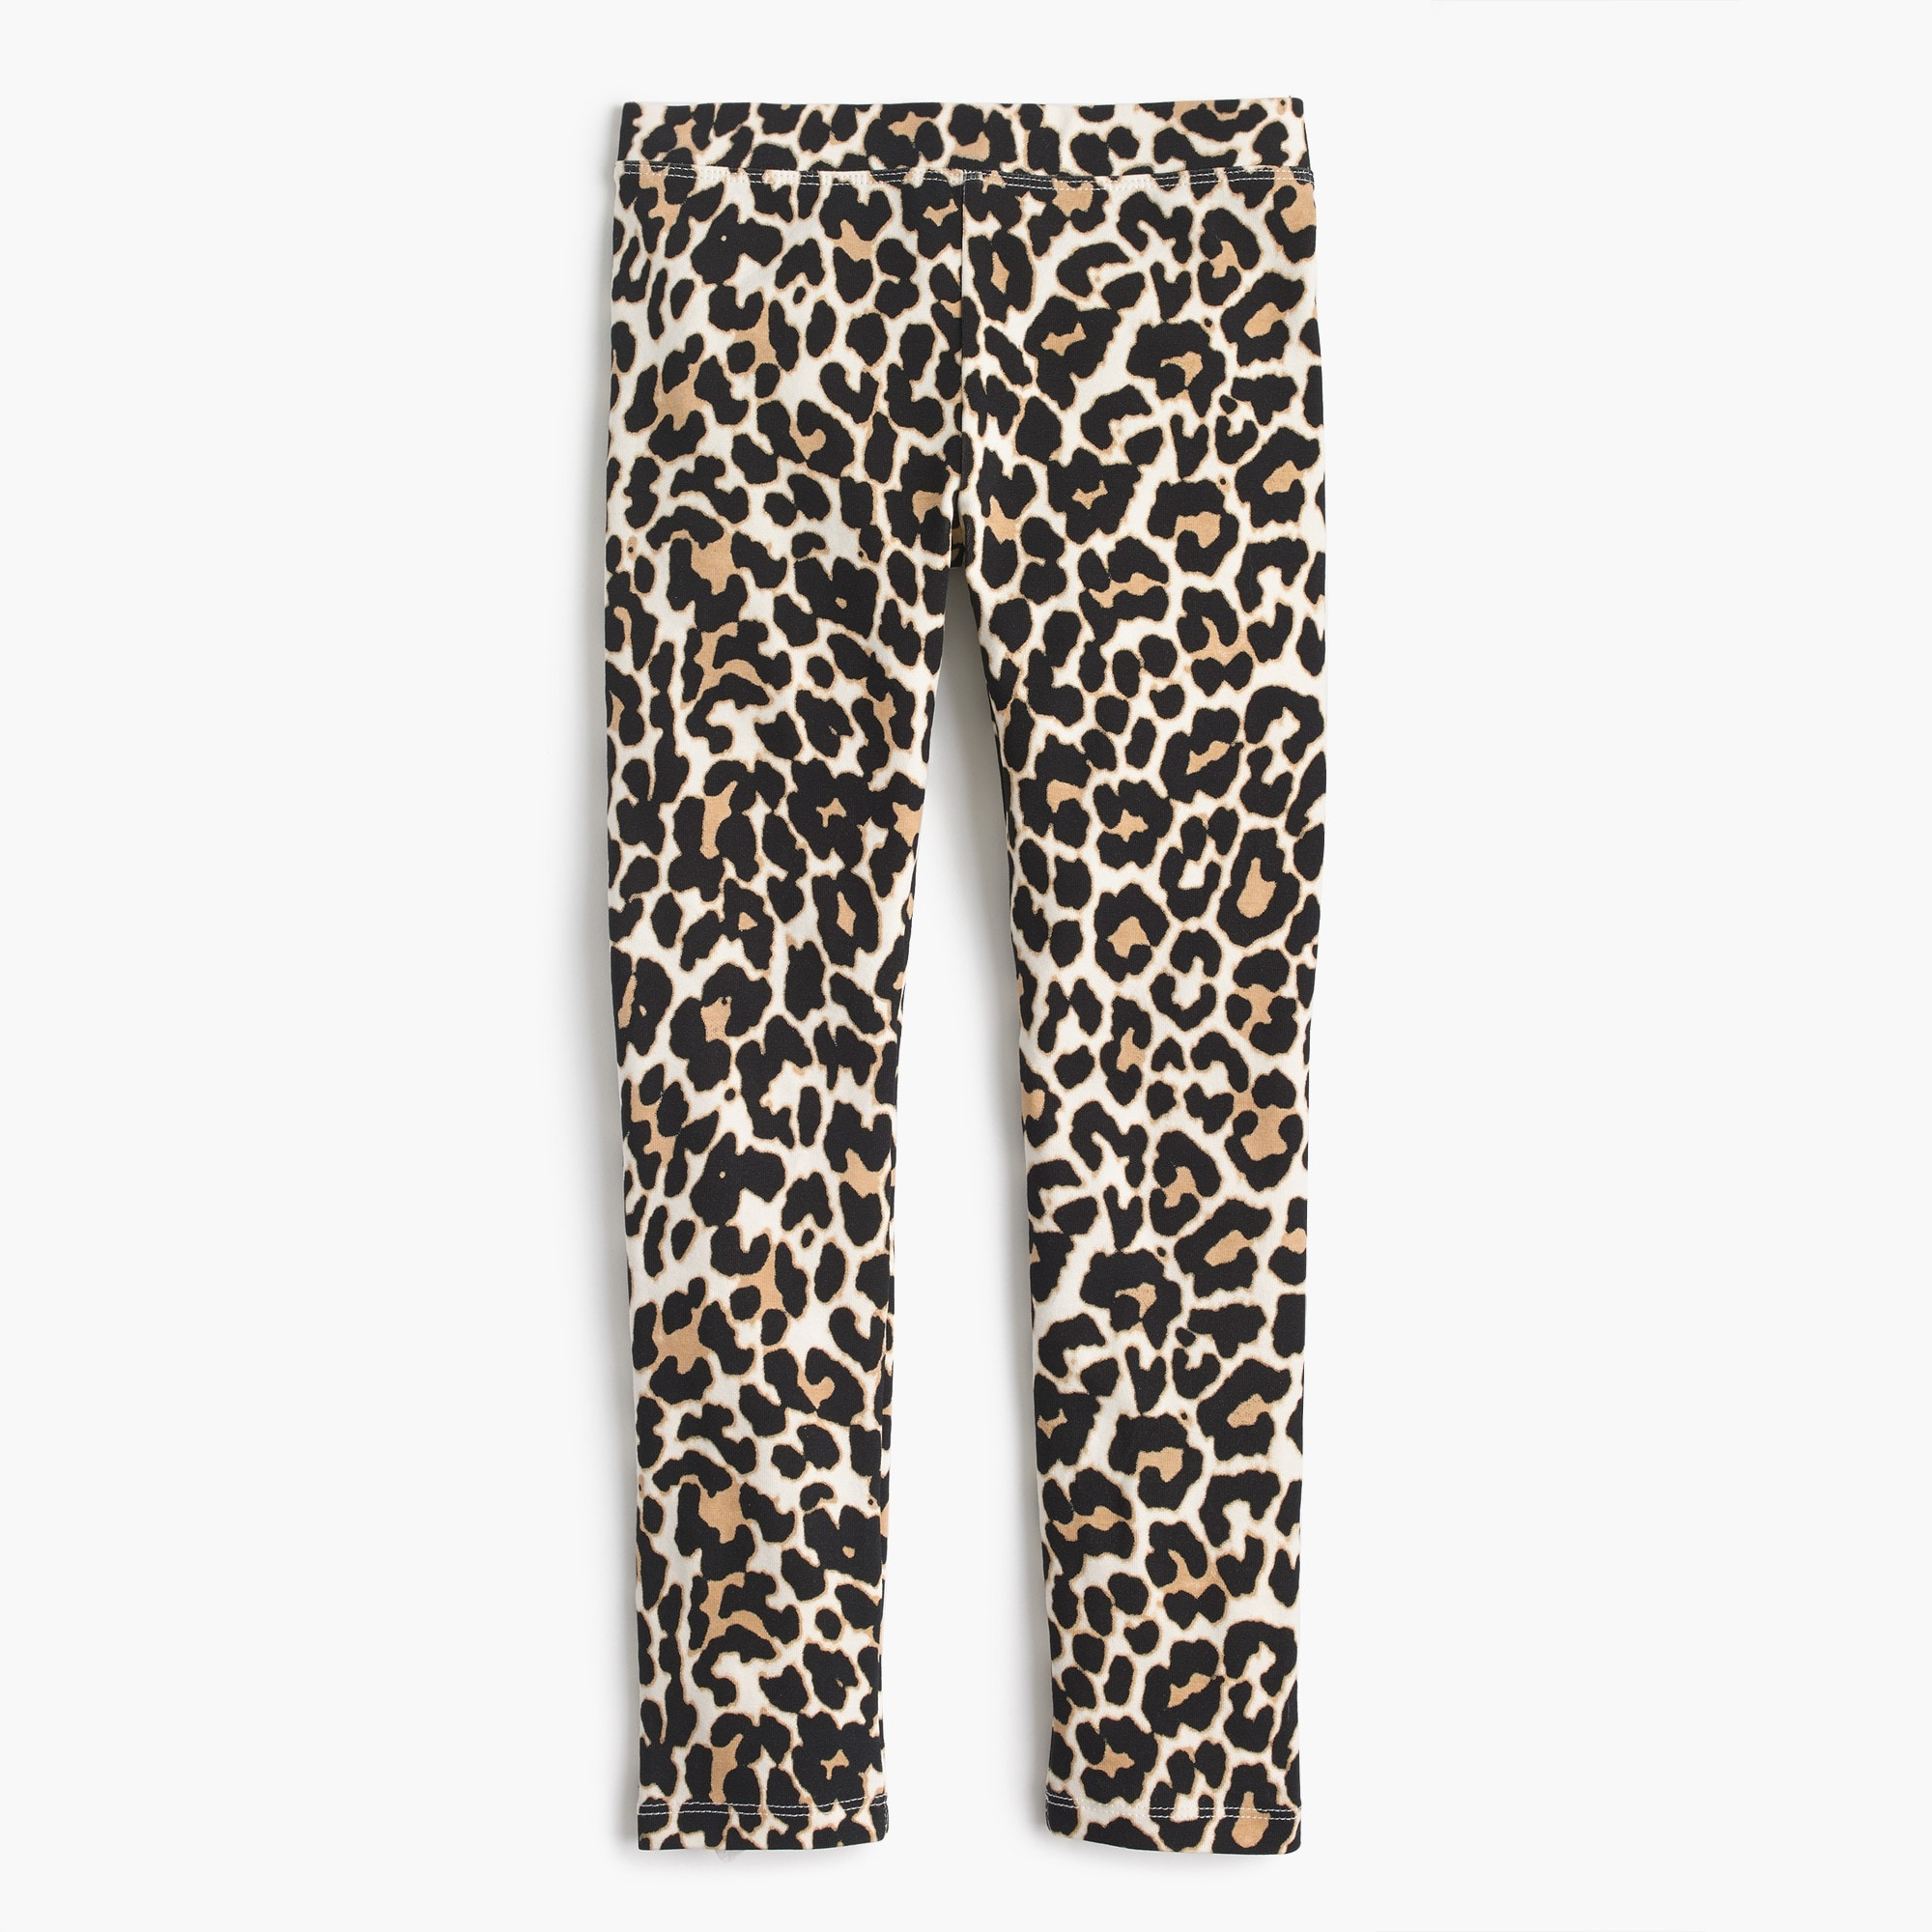 Girls' everyday leggings in leopard girl pants c